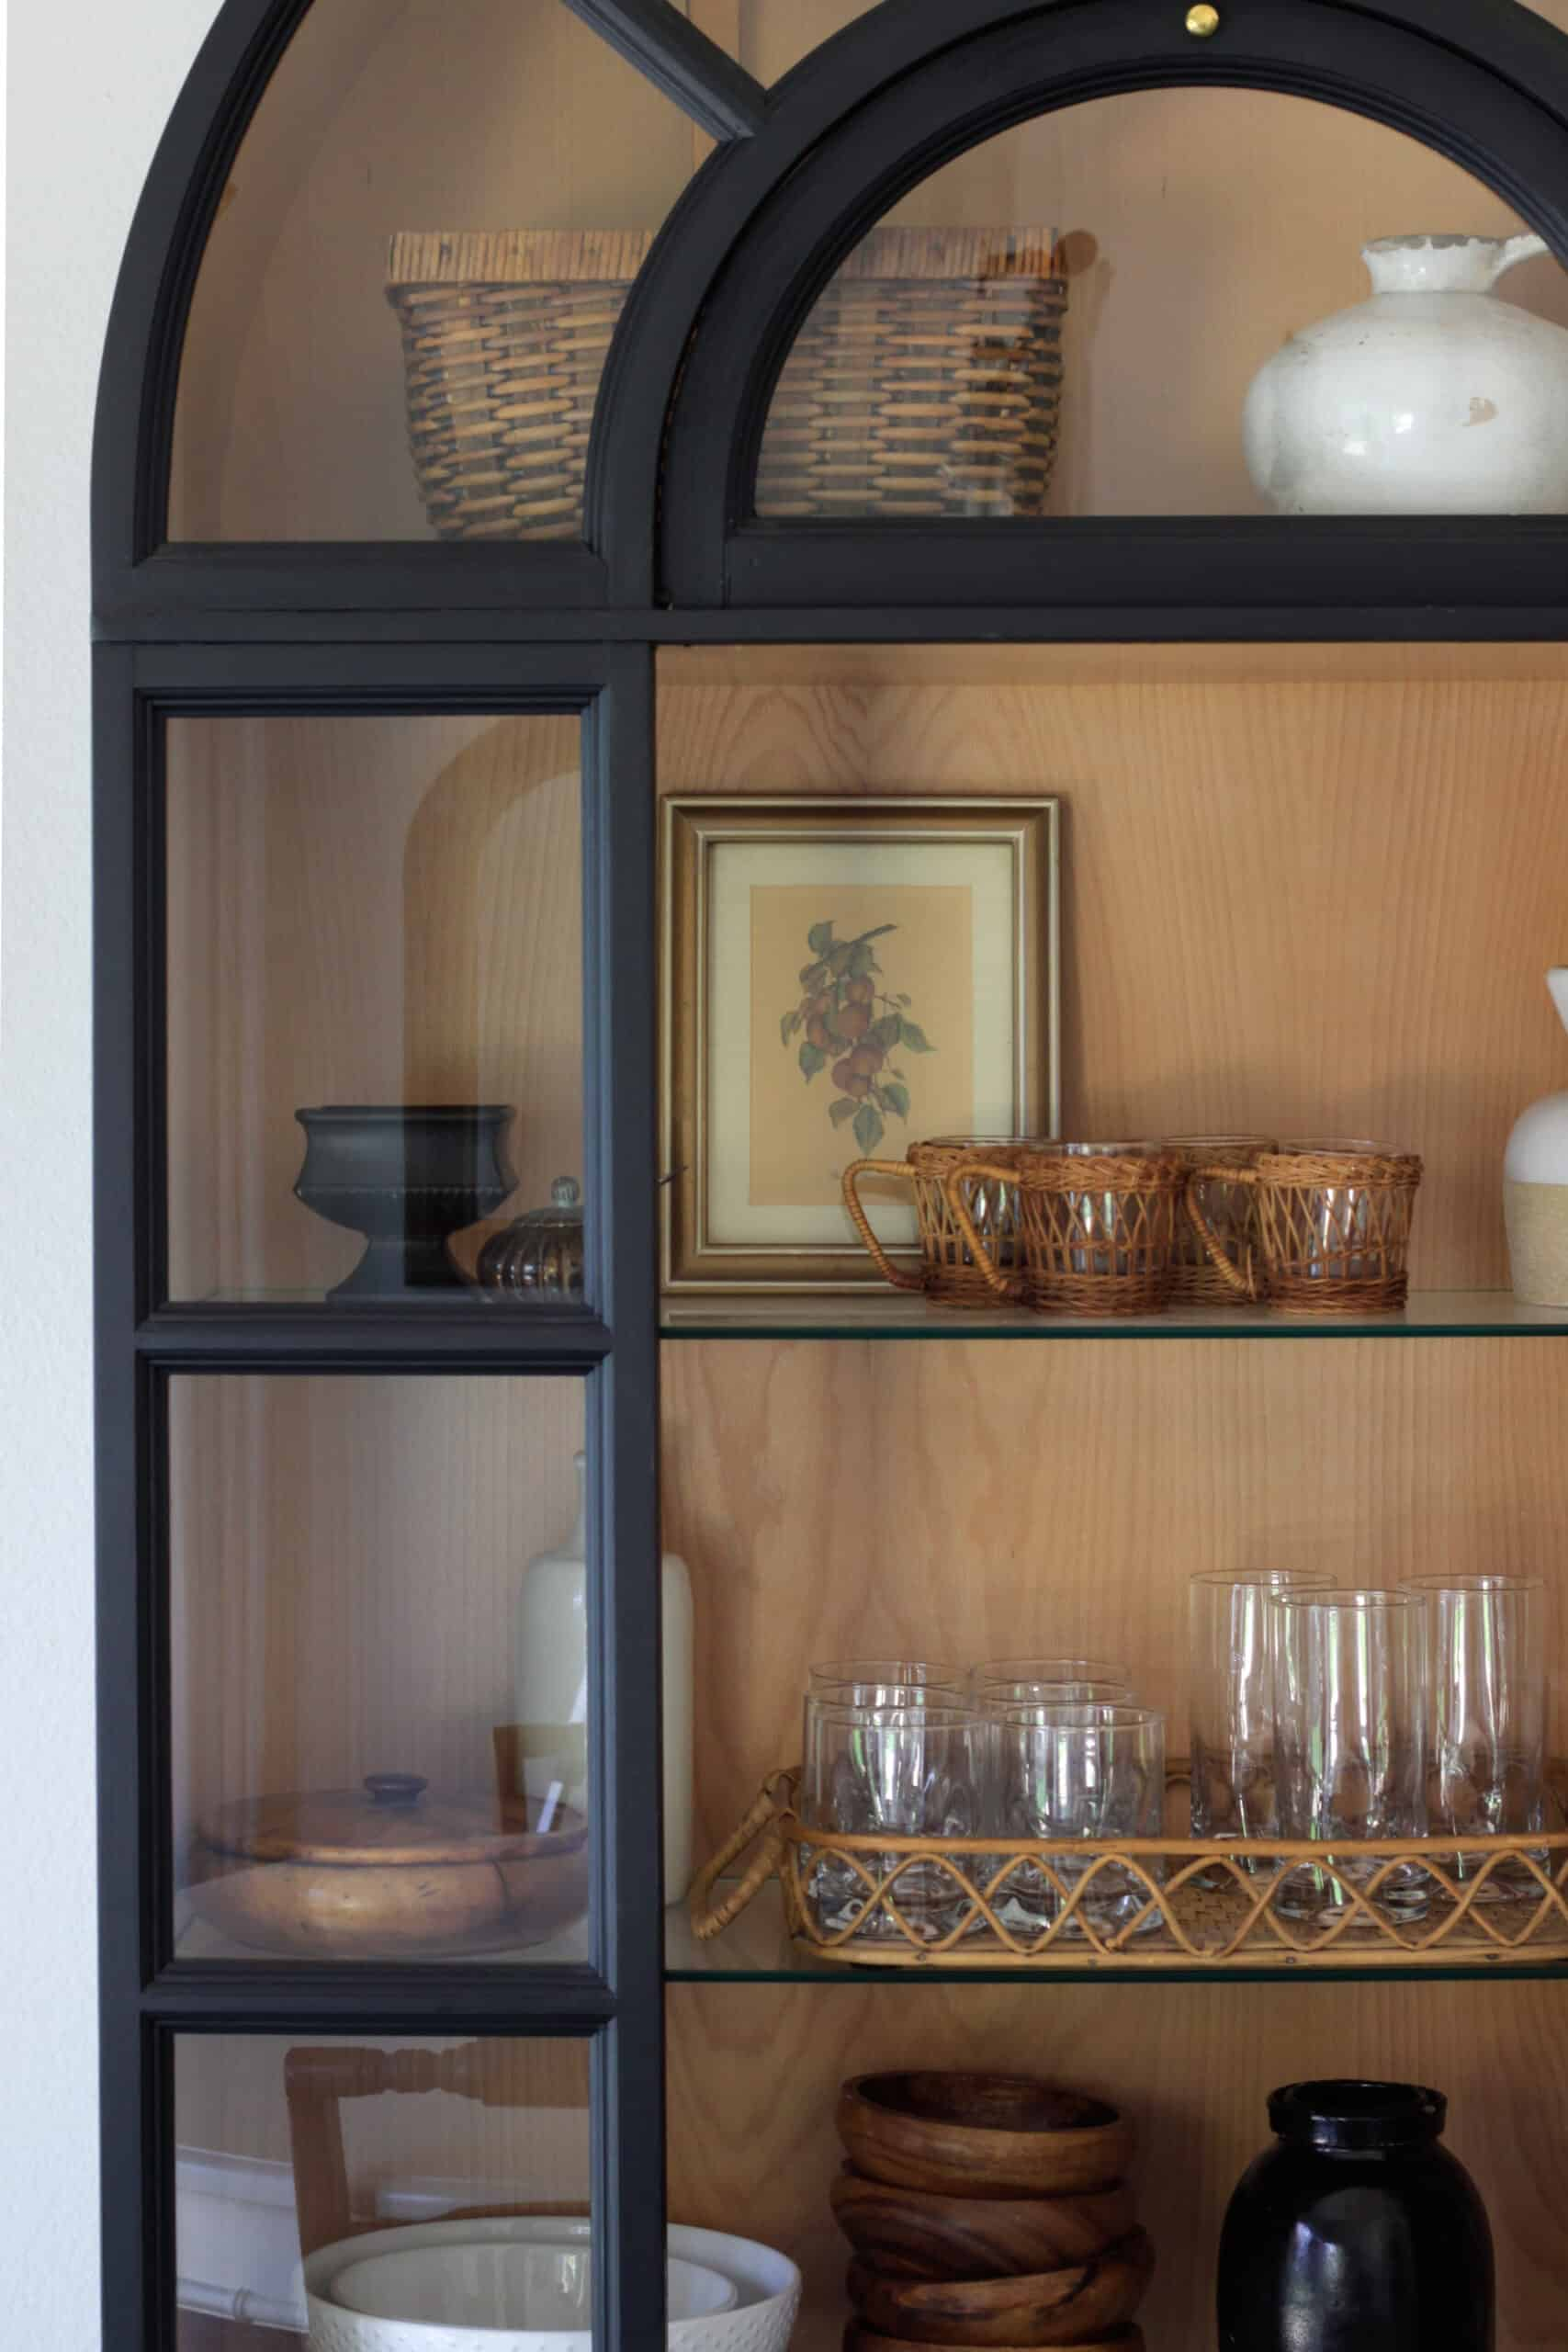 shelves with styling pieces and glasses on them